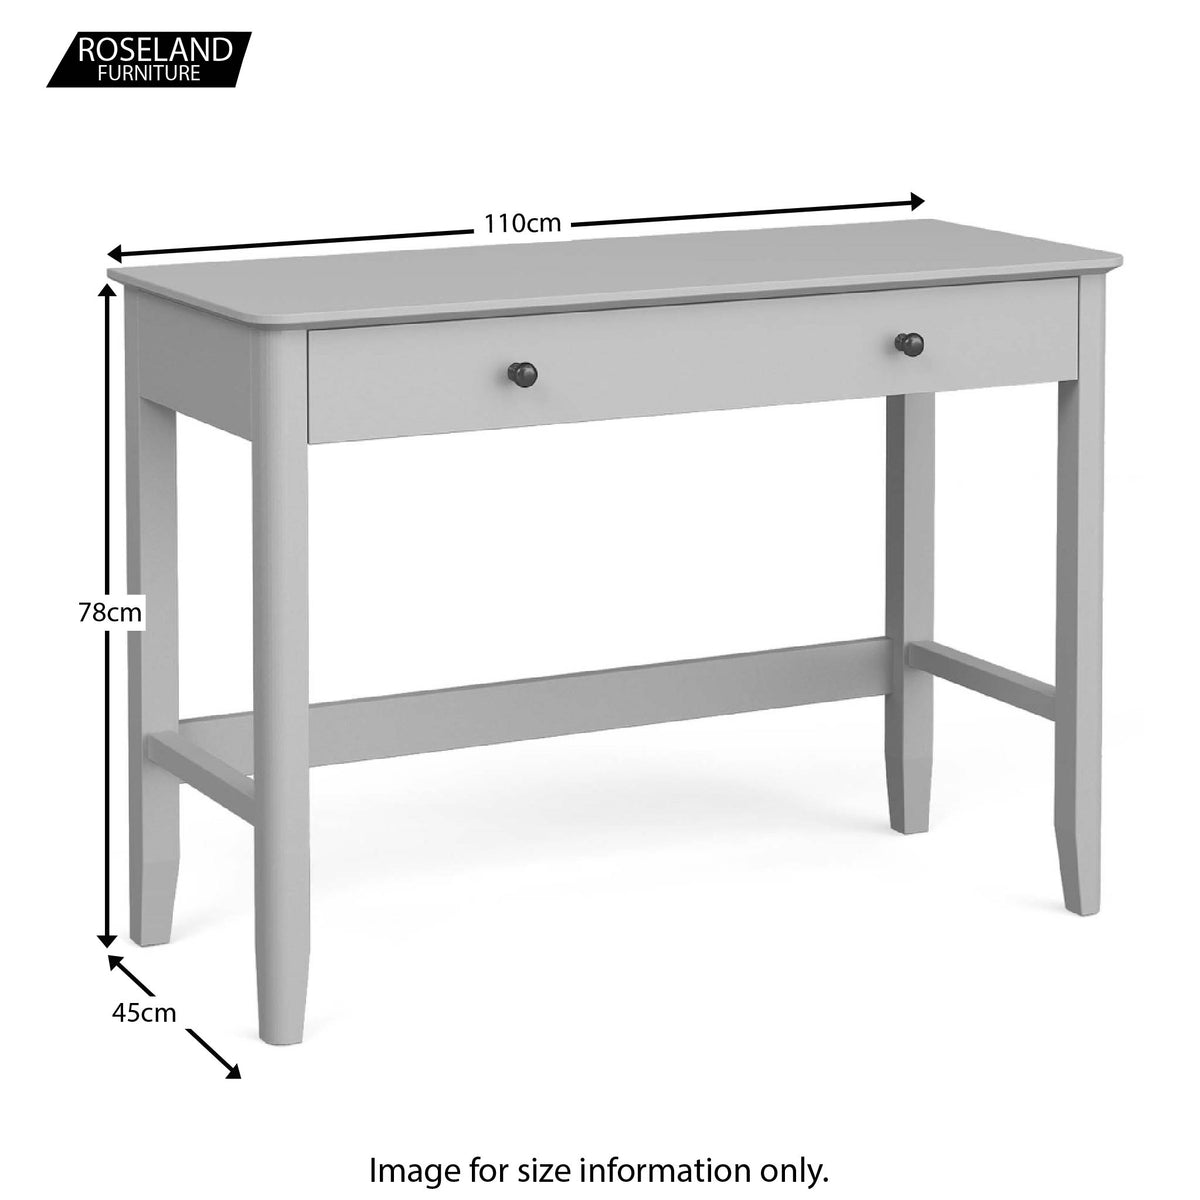 Elgin Grey Home Office Desk size guide